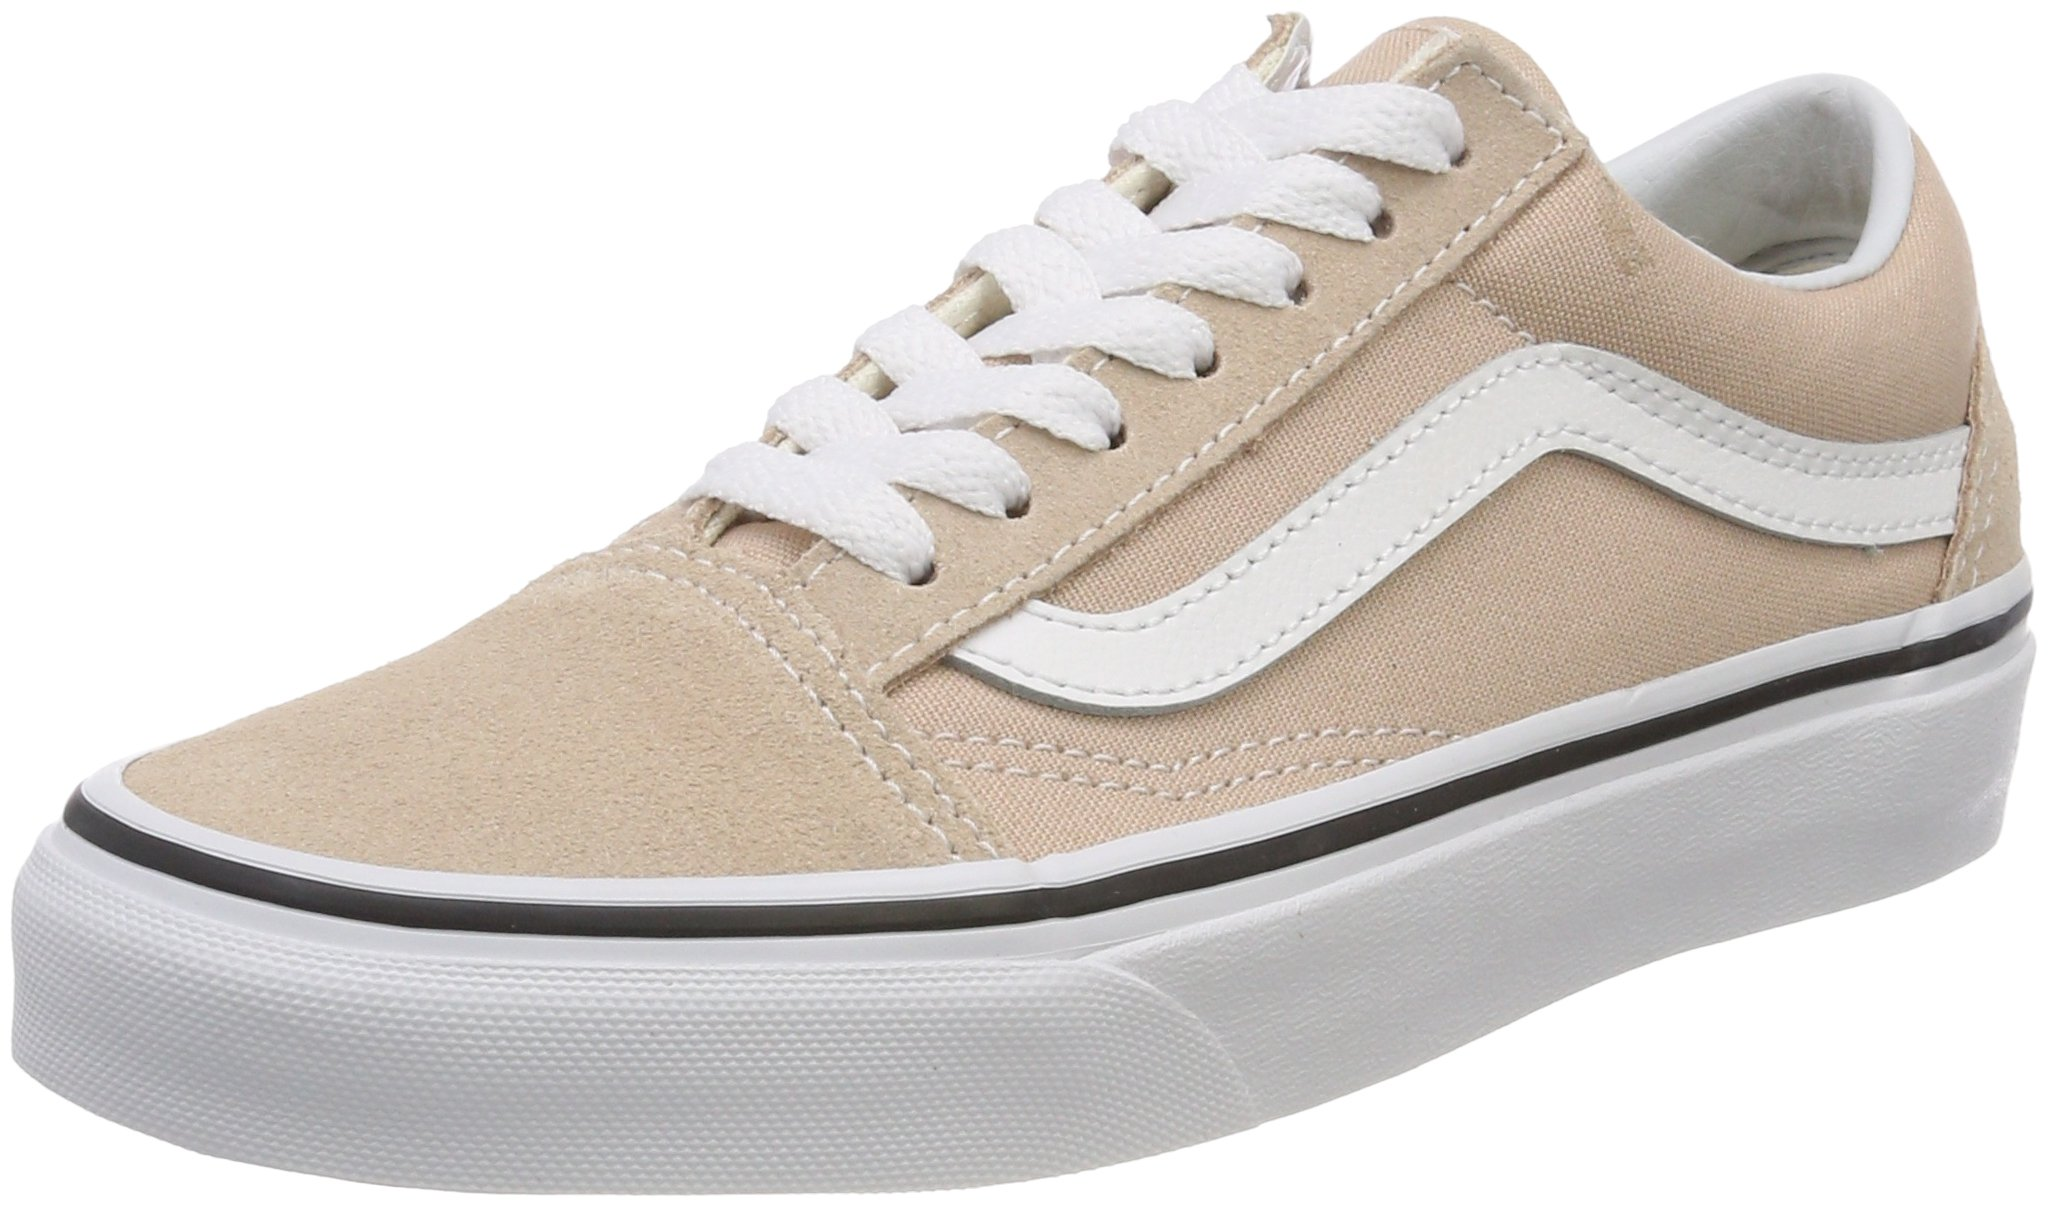 e4a3ae8011 Galleon - Vans Women s Old Skool Trainers